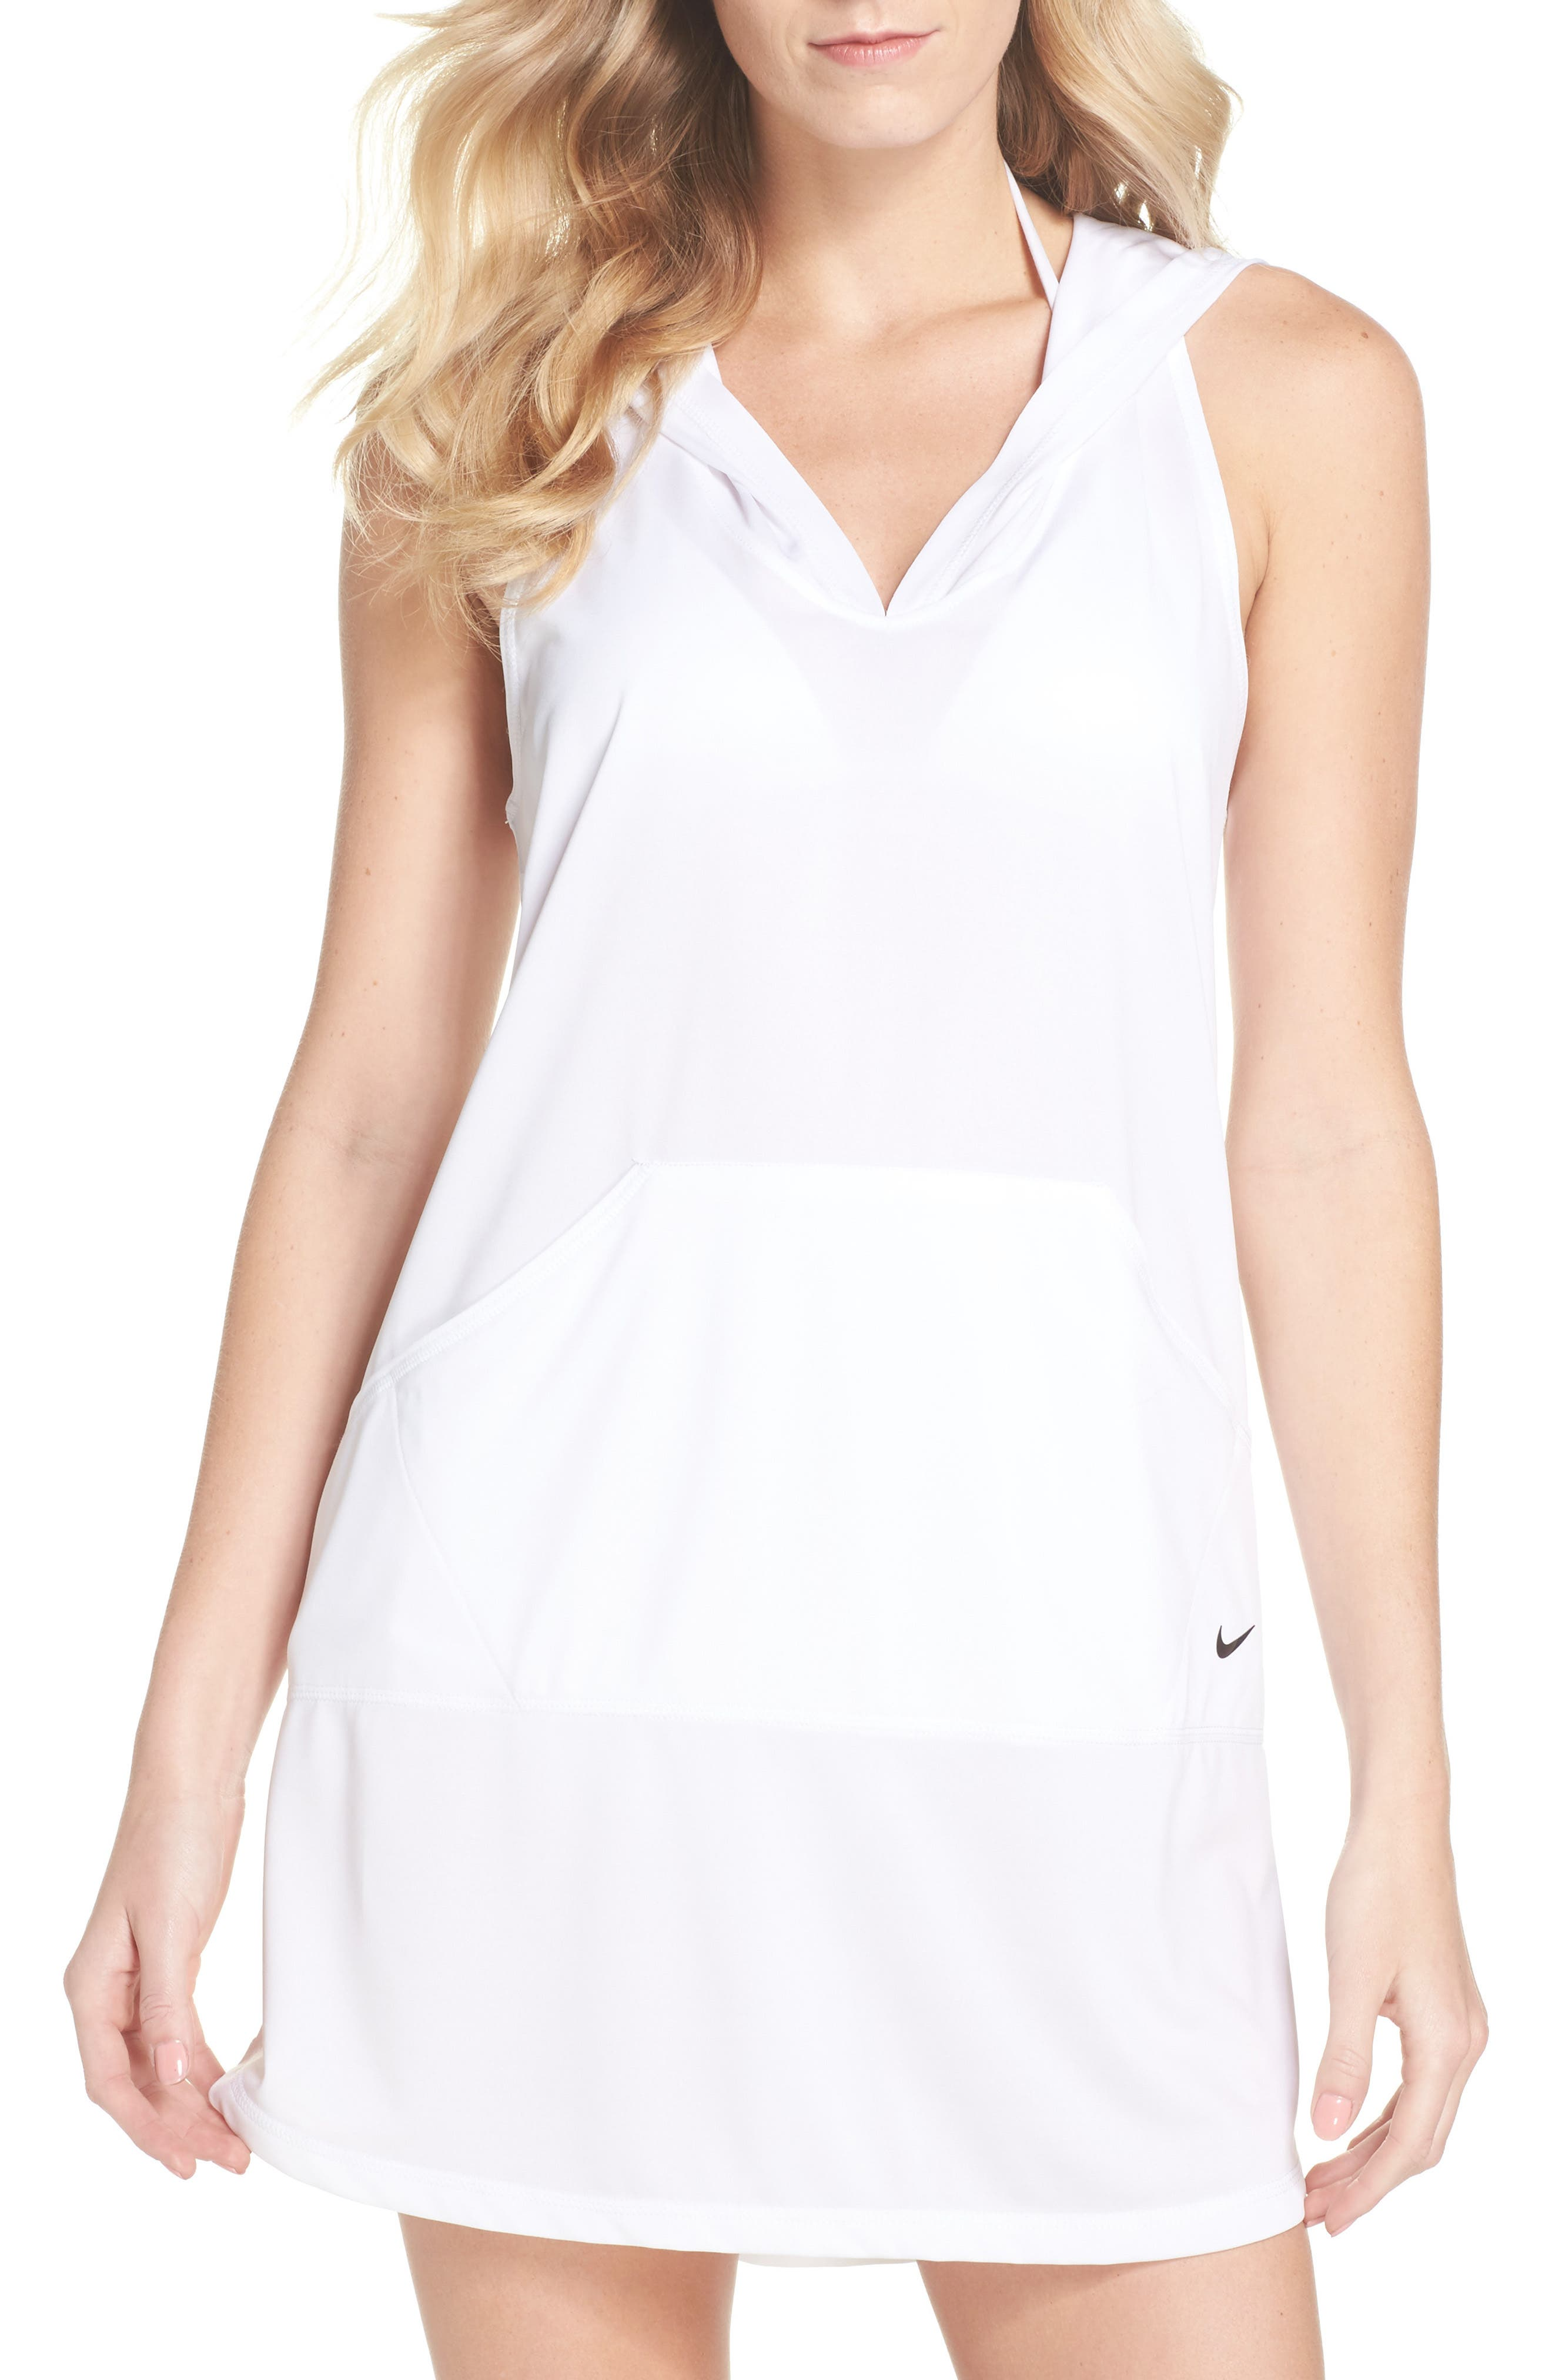 HOODED COVER-UP DRESS